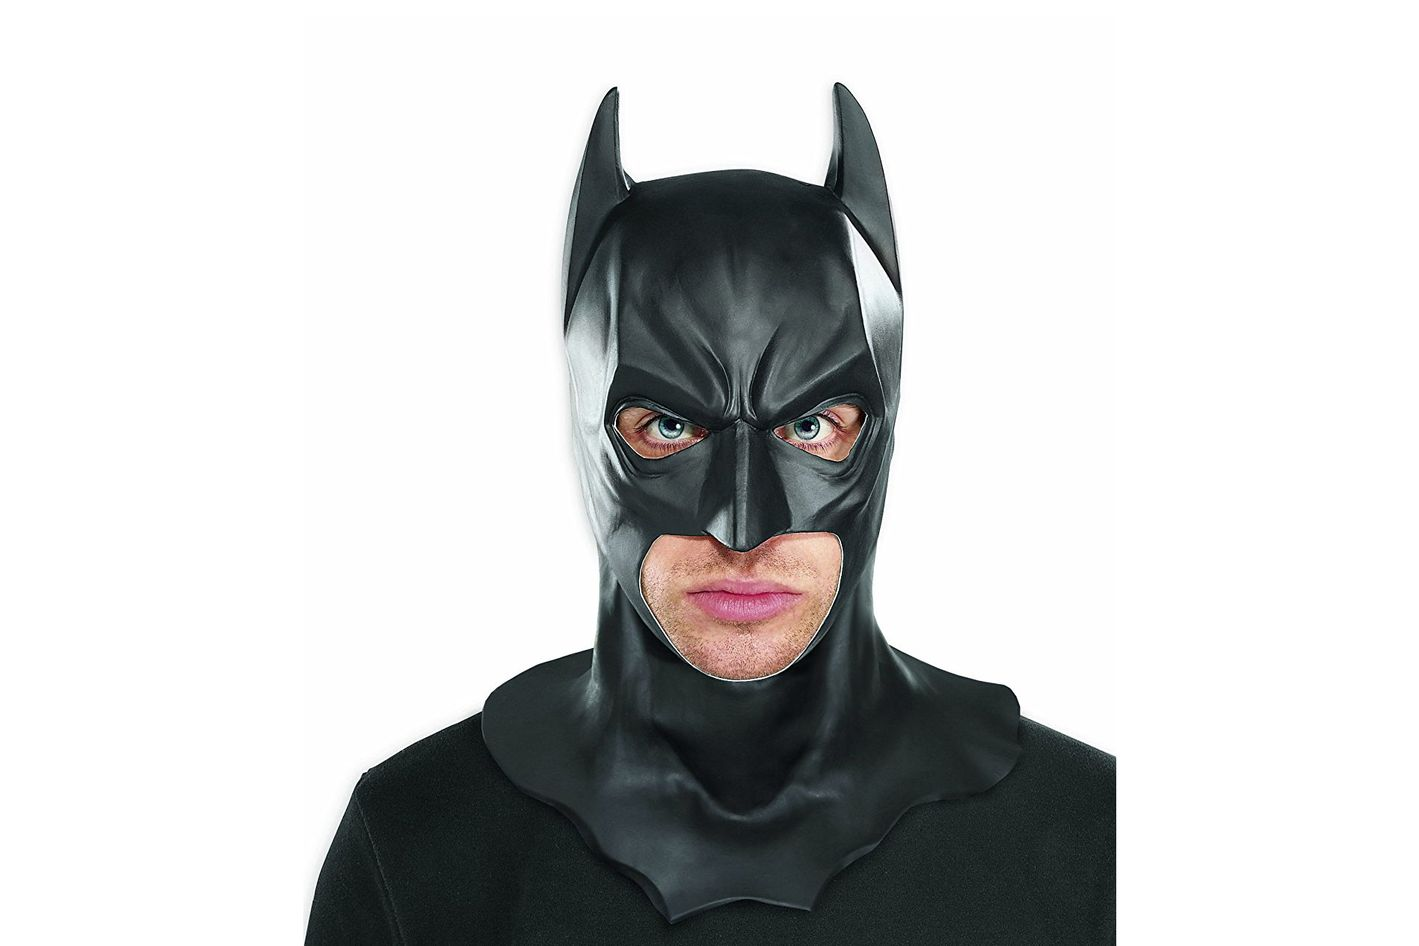 Batman the Dark Knight Rises Full Batman Mask